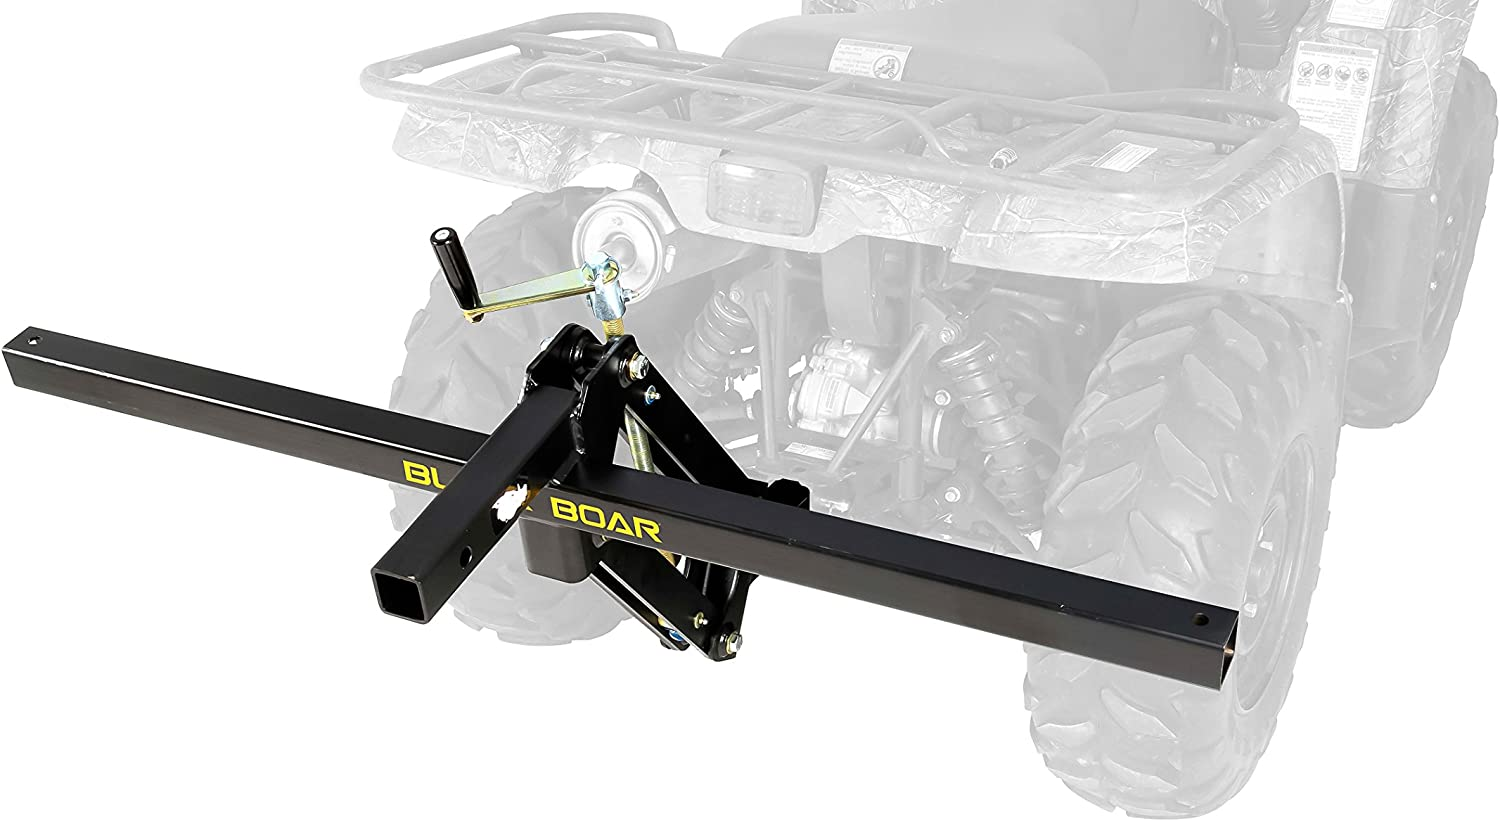 Black Boar ATV/UTV, Manually Lift and Lower Implements with Handle or Actuate Using a Drill and Socket (66013)